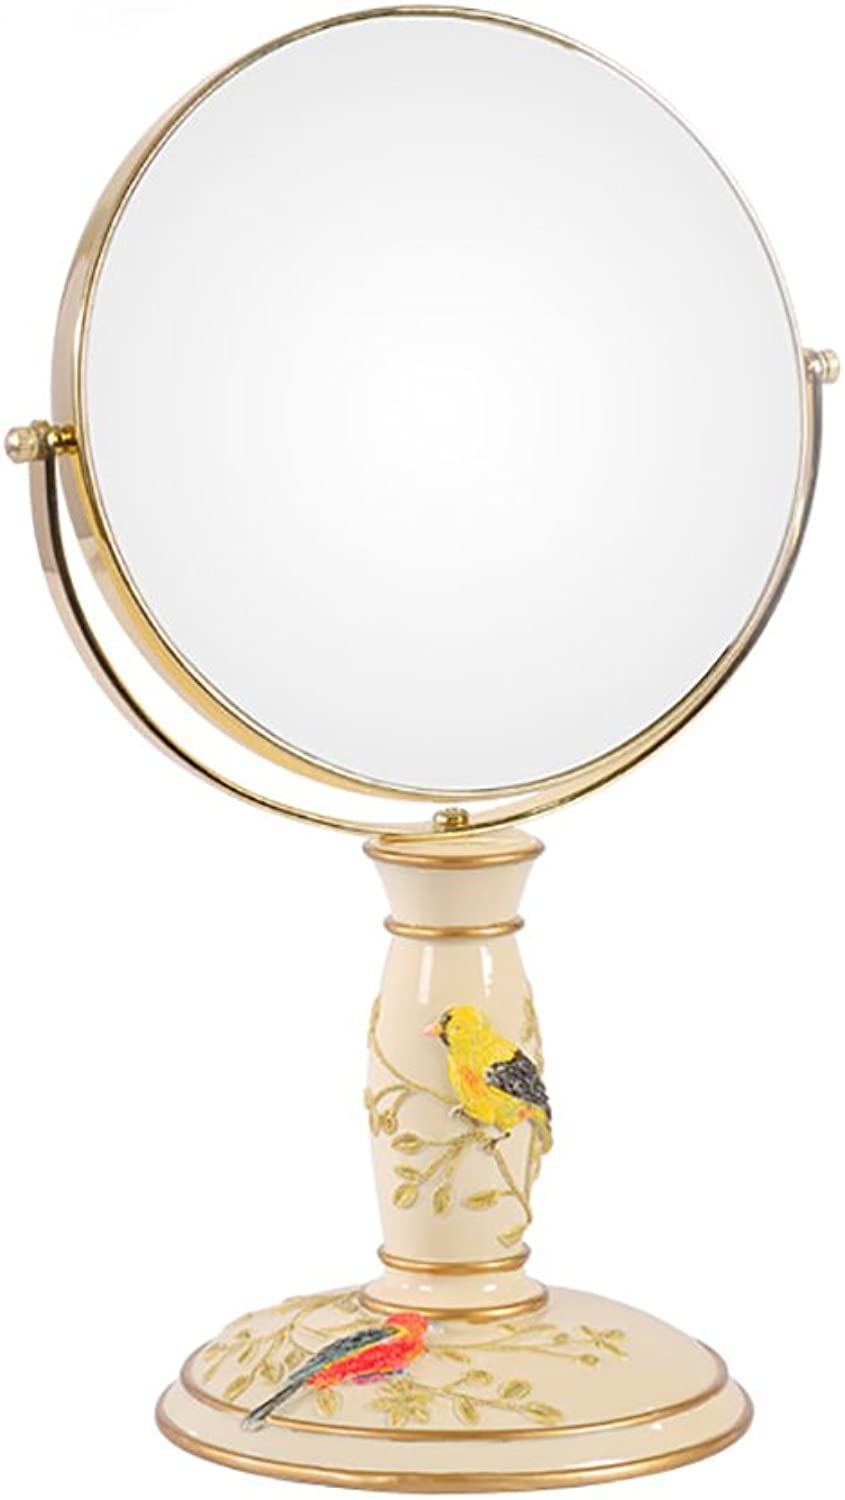 GUOWEI Mirror Double-Sided 360 redation 3X Magnification Desktop Gorgeous Vanity Makeup Yellow (color   Yellow, Size   19x19cm)